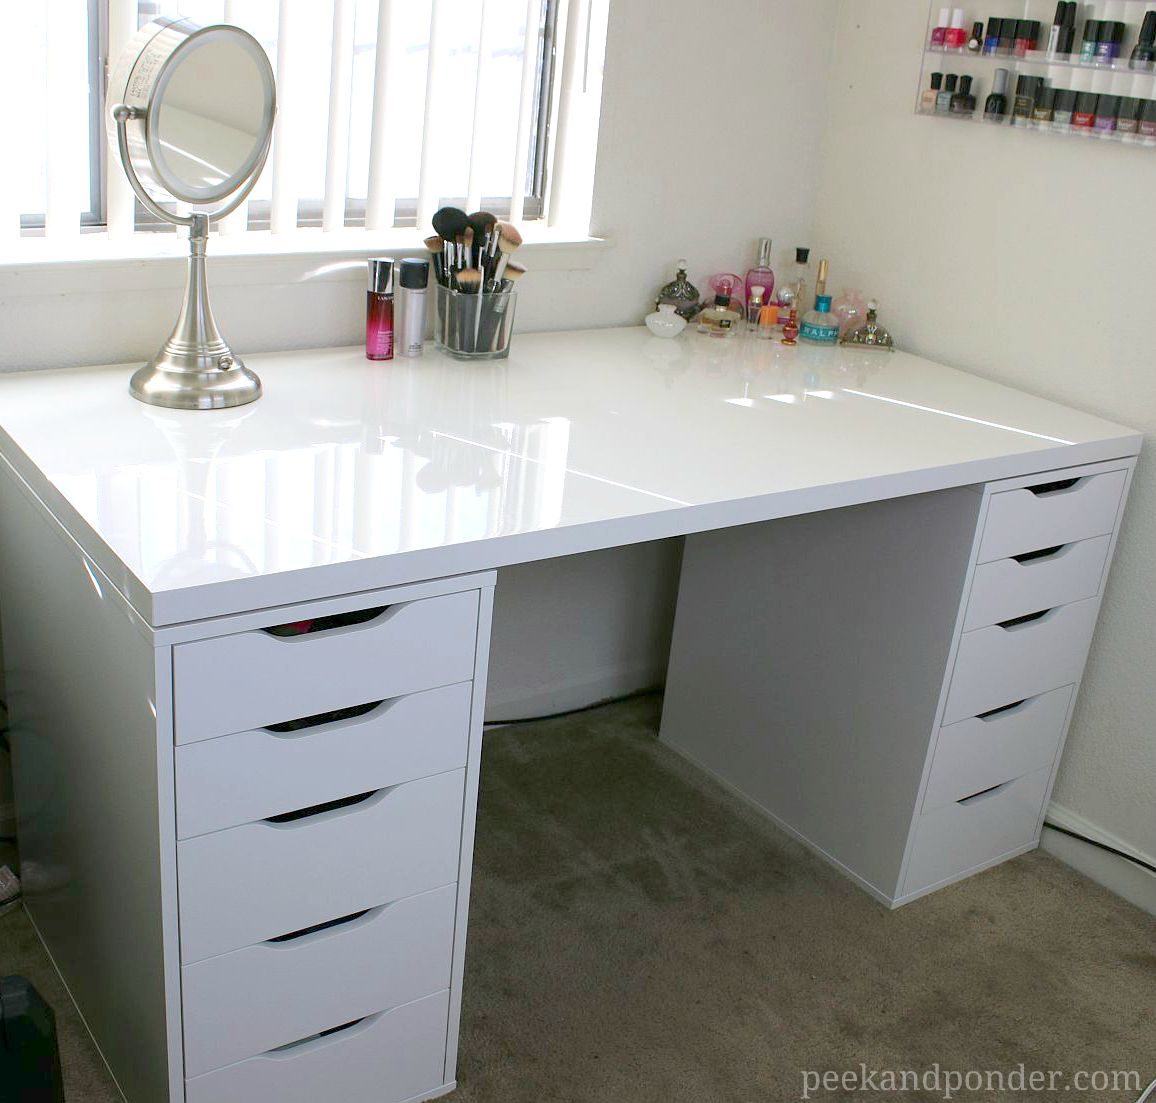 Best Video Makeup Vanity And Storage Decoração De Casa 640 x 480